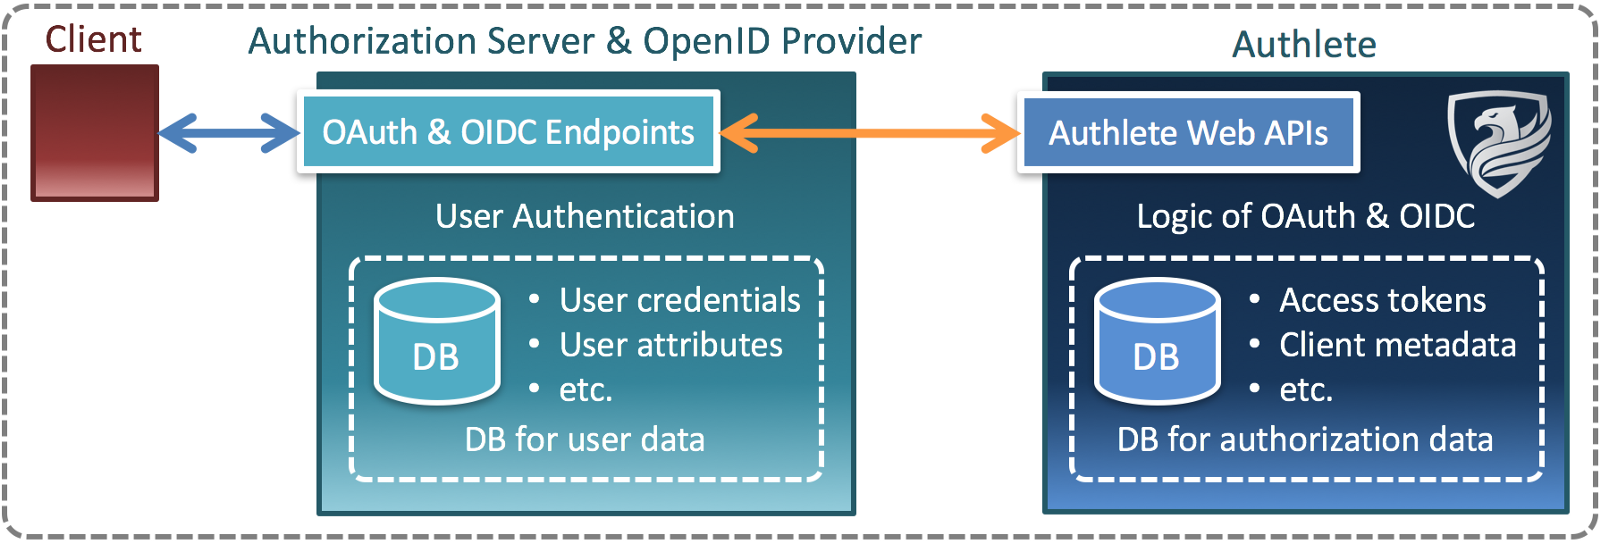 oauth 2.0 and openid connect implementation in c# (authlete)